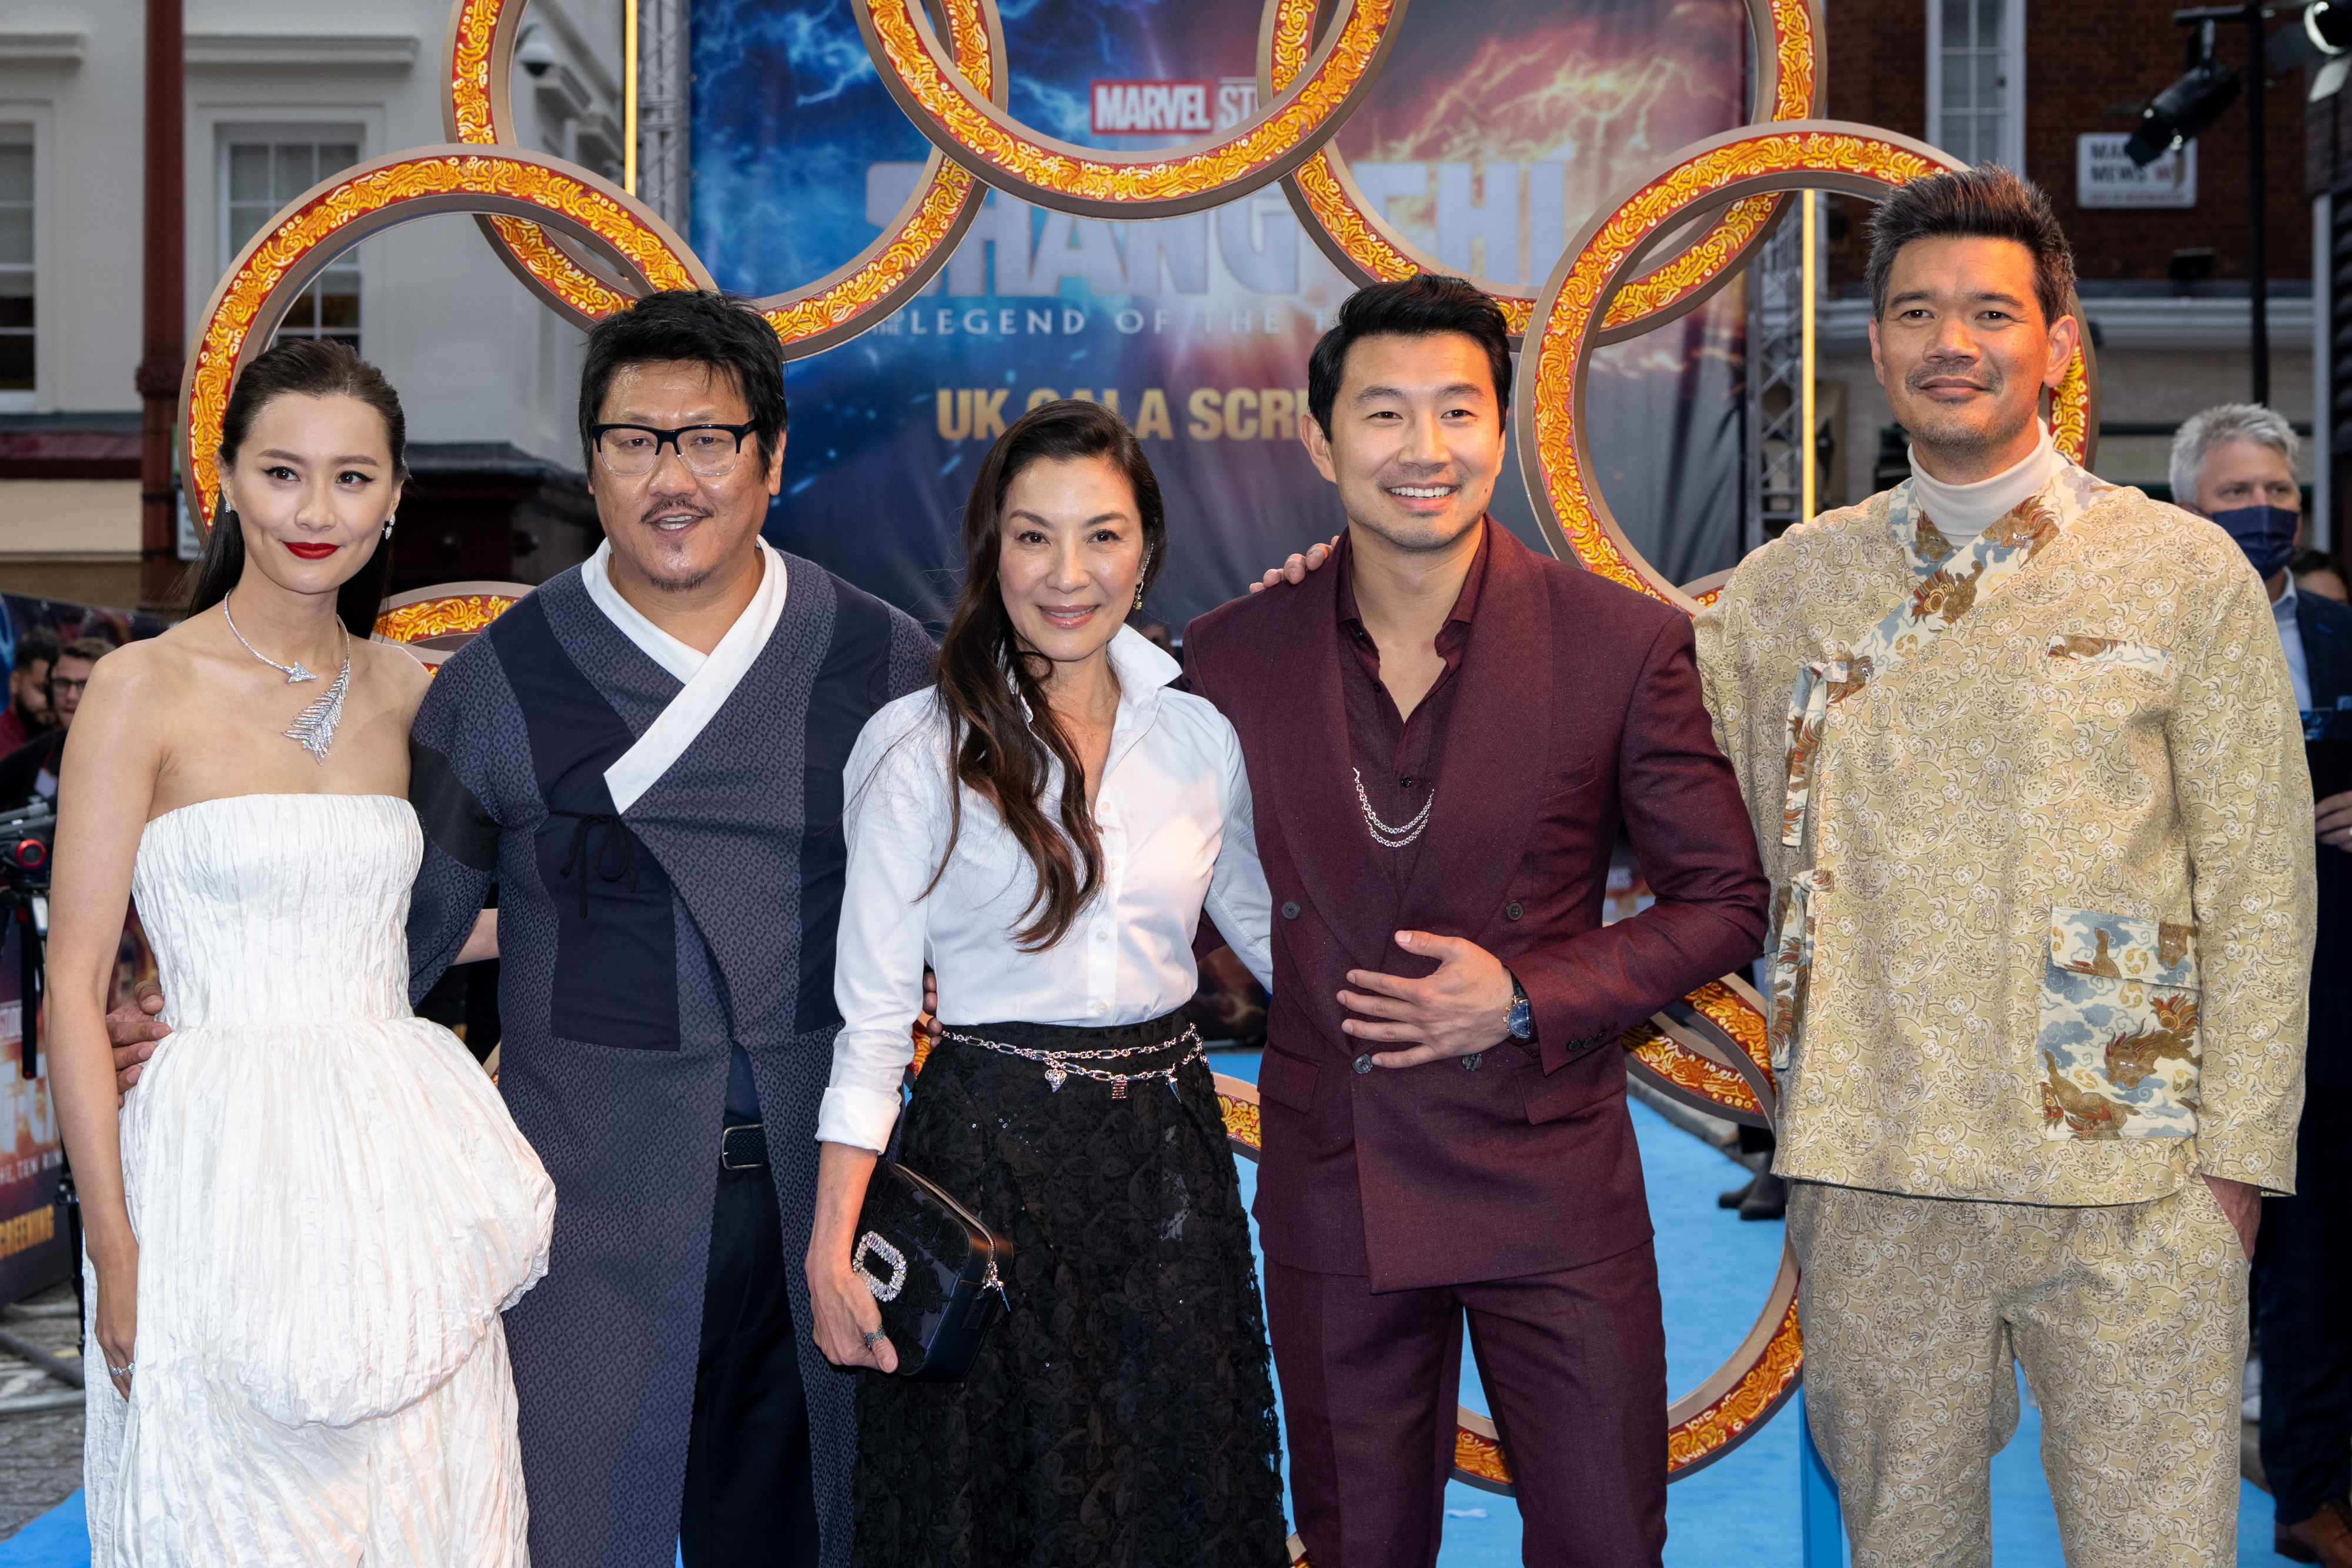 Michelle Yeoh, Benedict Wong, Destin Daniel Cretton, Fala Chen, and Simu Liu at an event for Shang-Chi and the Legend of the Ten Rings (2021)